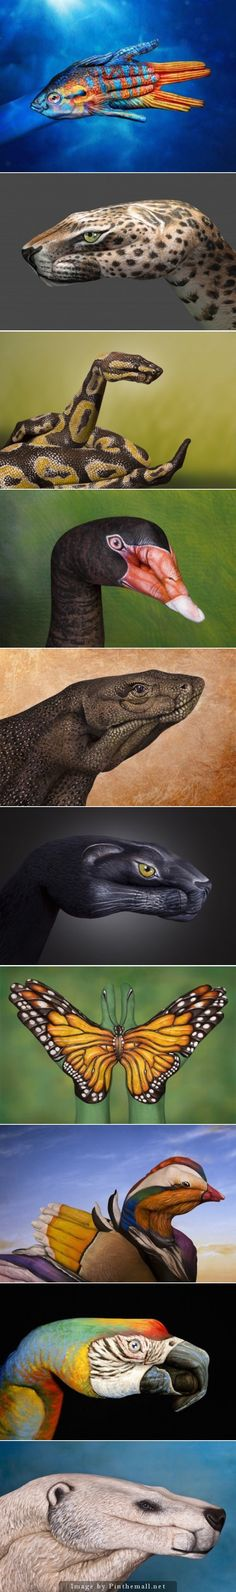 Guido Daniele Shows Off His Incredible Hand-Painting Animal Art in Photos - created via http://pinthemall.net